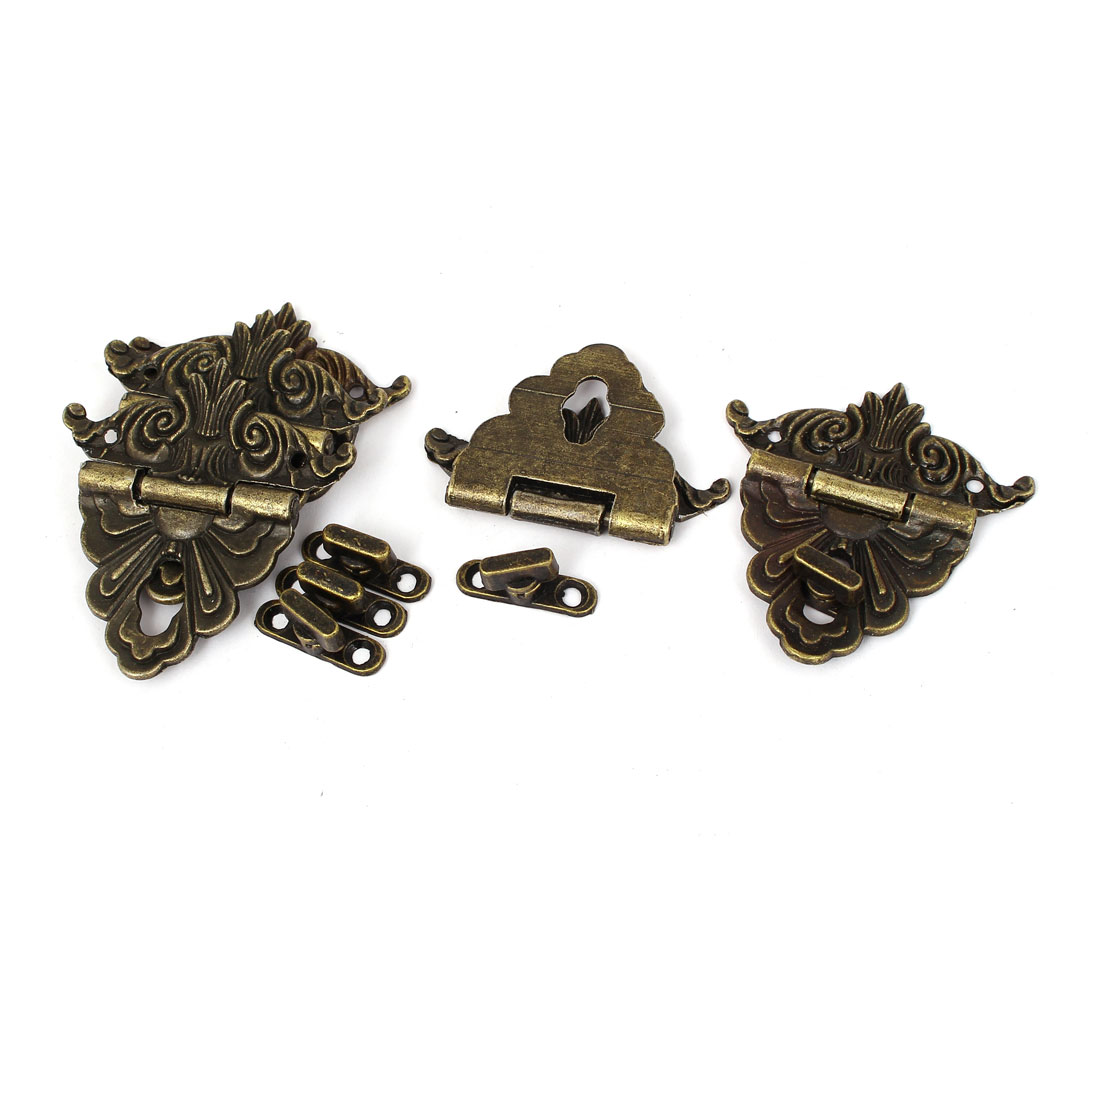 Antique Vintage Style Carved Wooden Box Case Hasp Latch Locking 5pcs